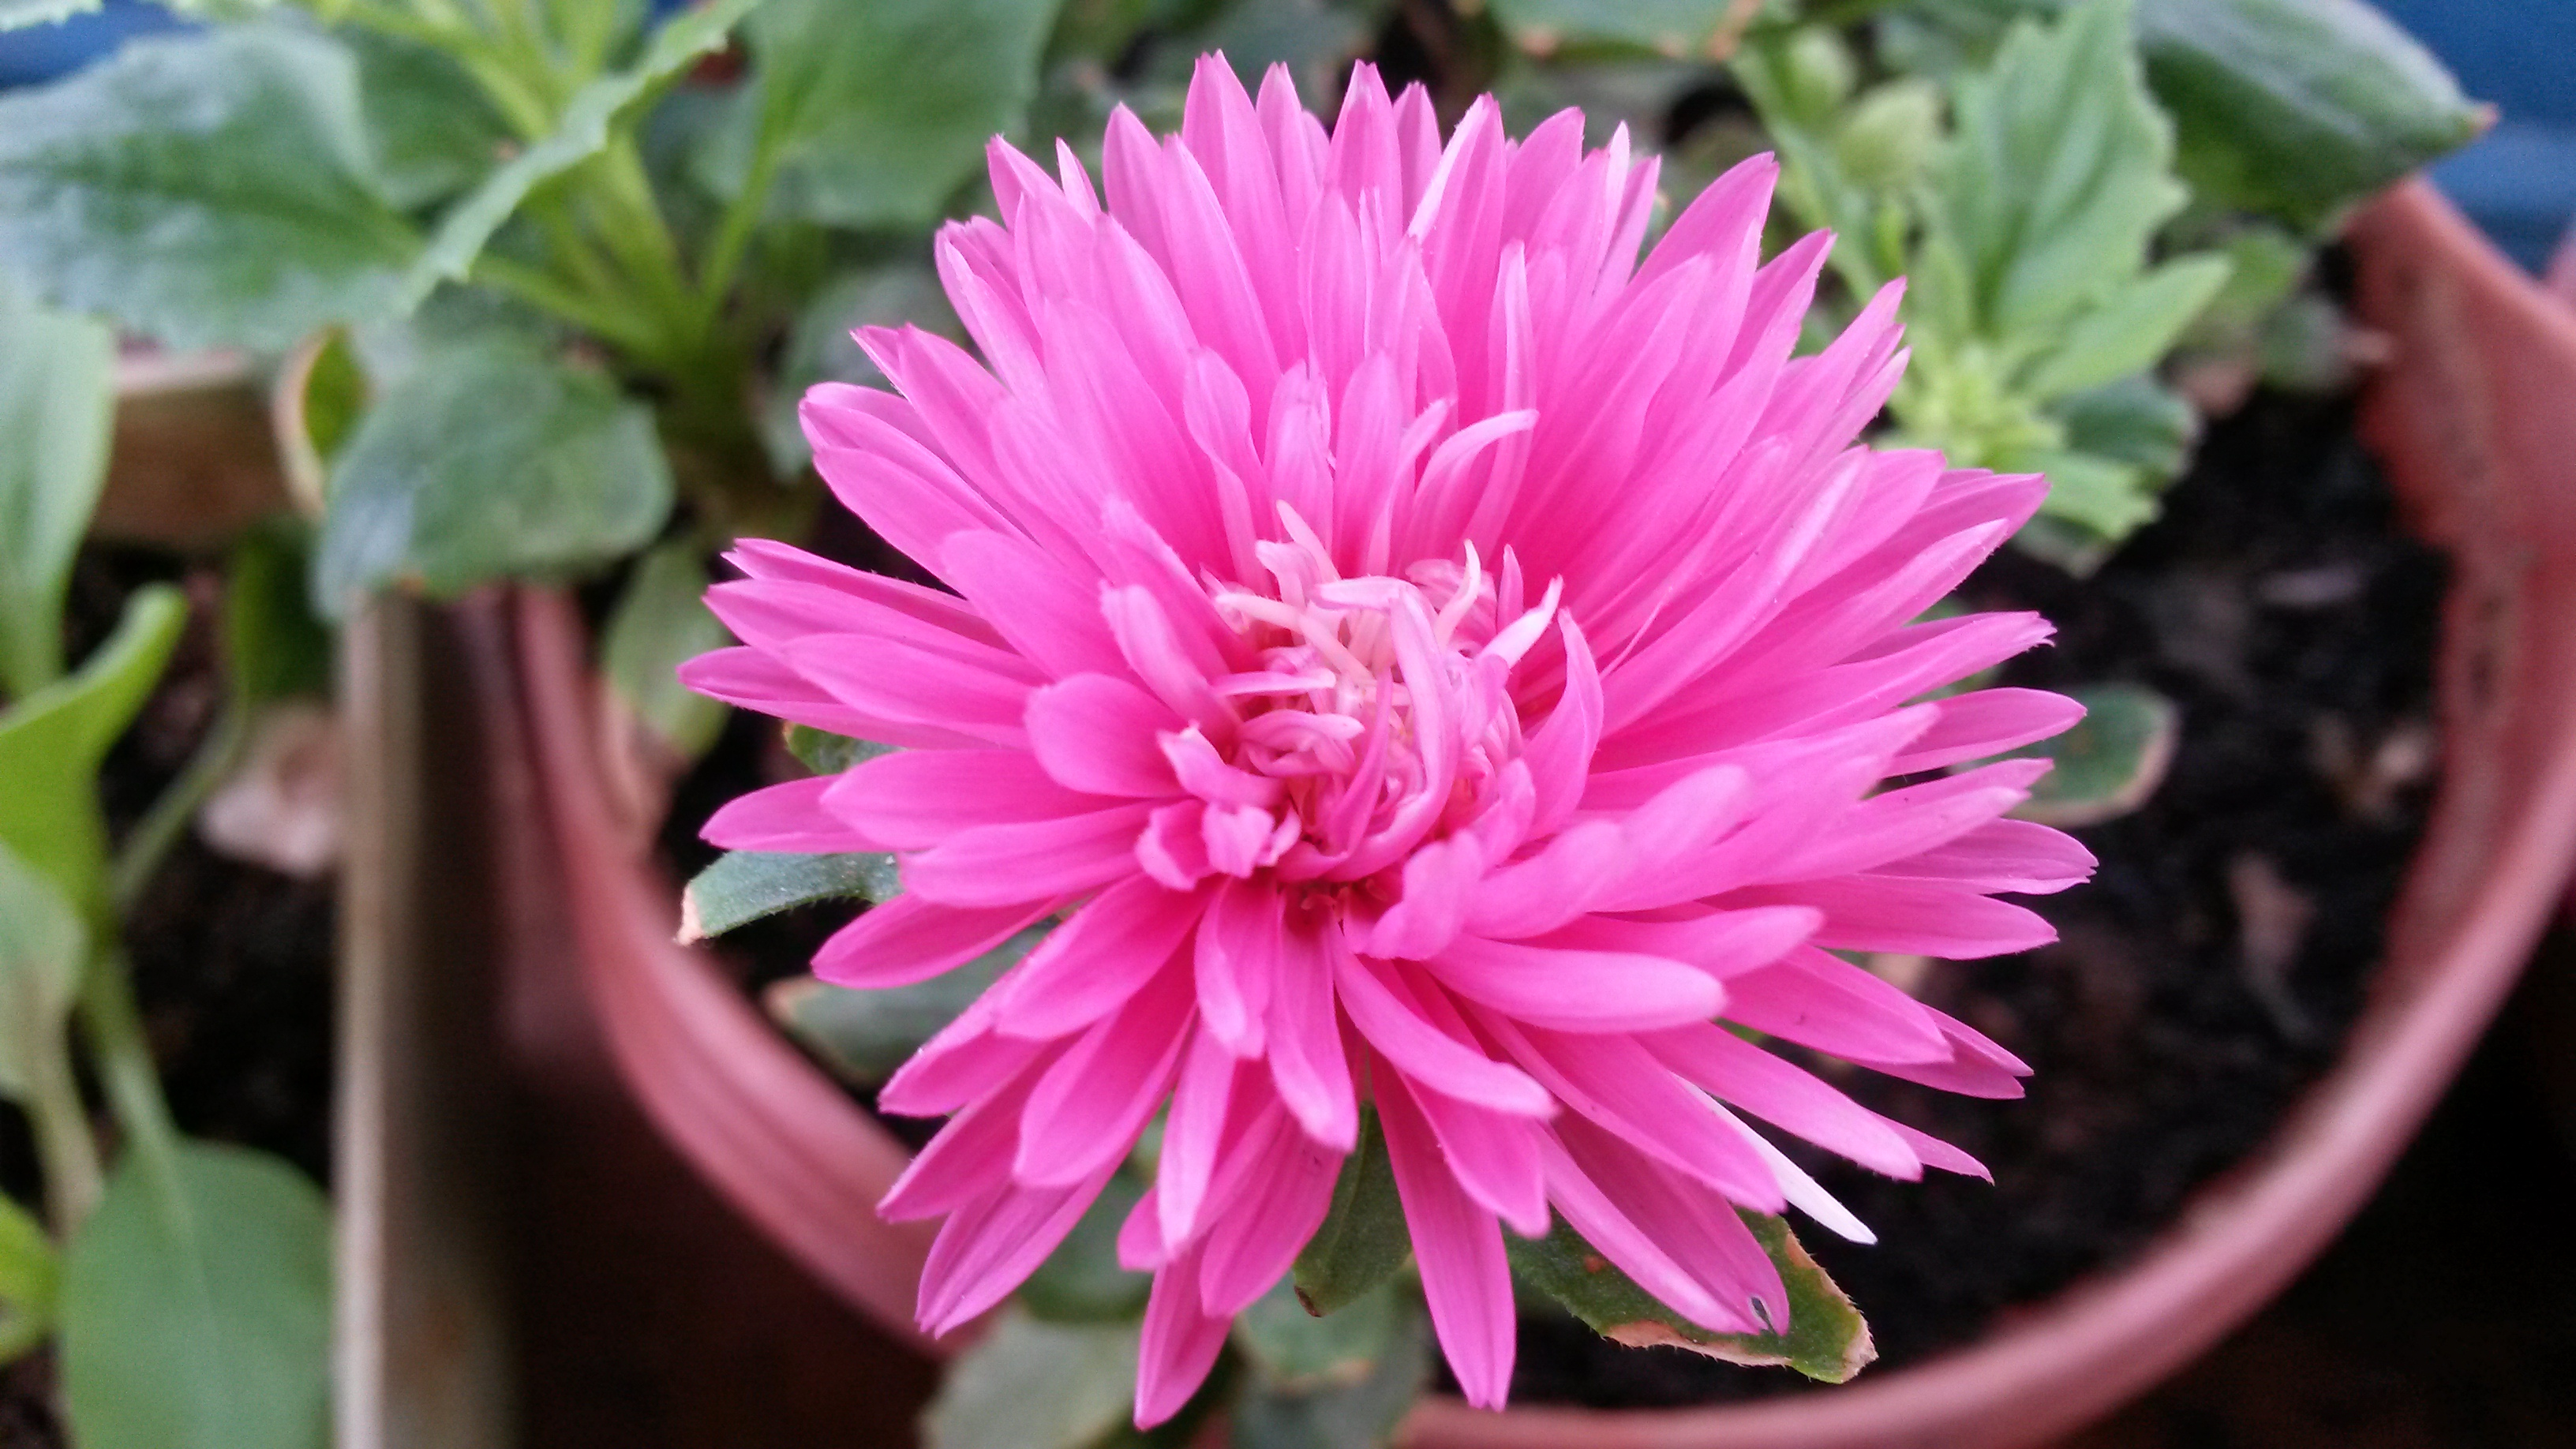 aster flower information in hindi  flower, Beautiful flower